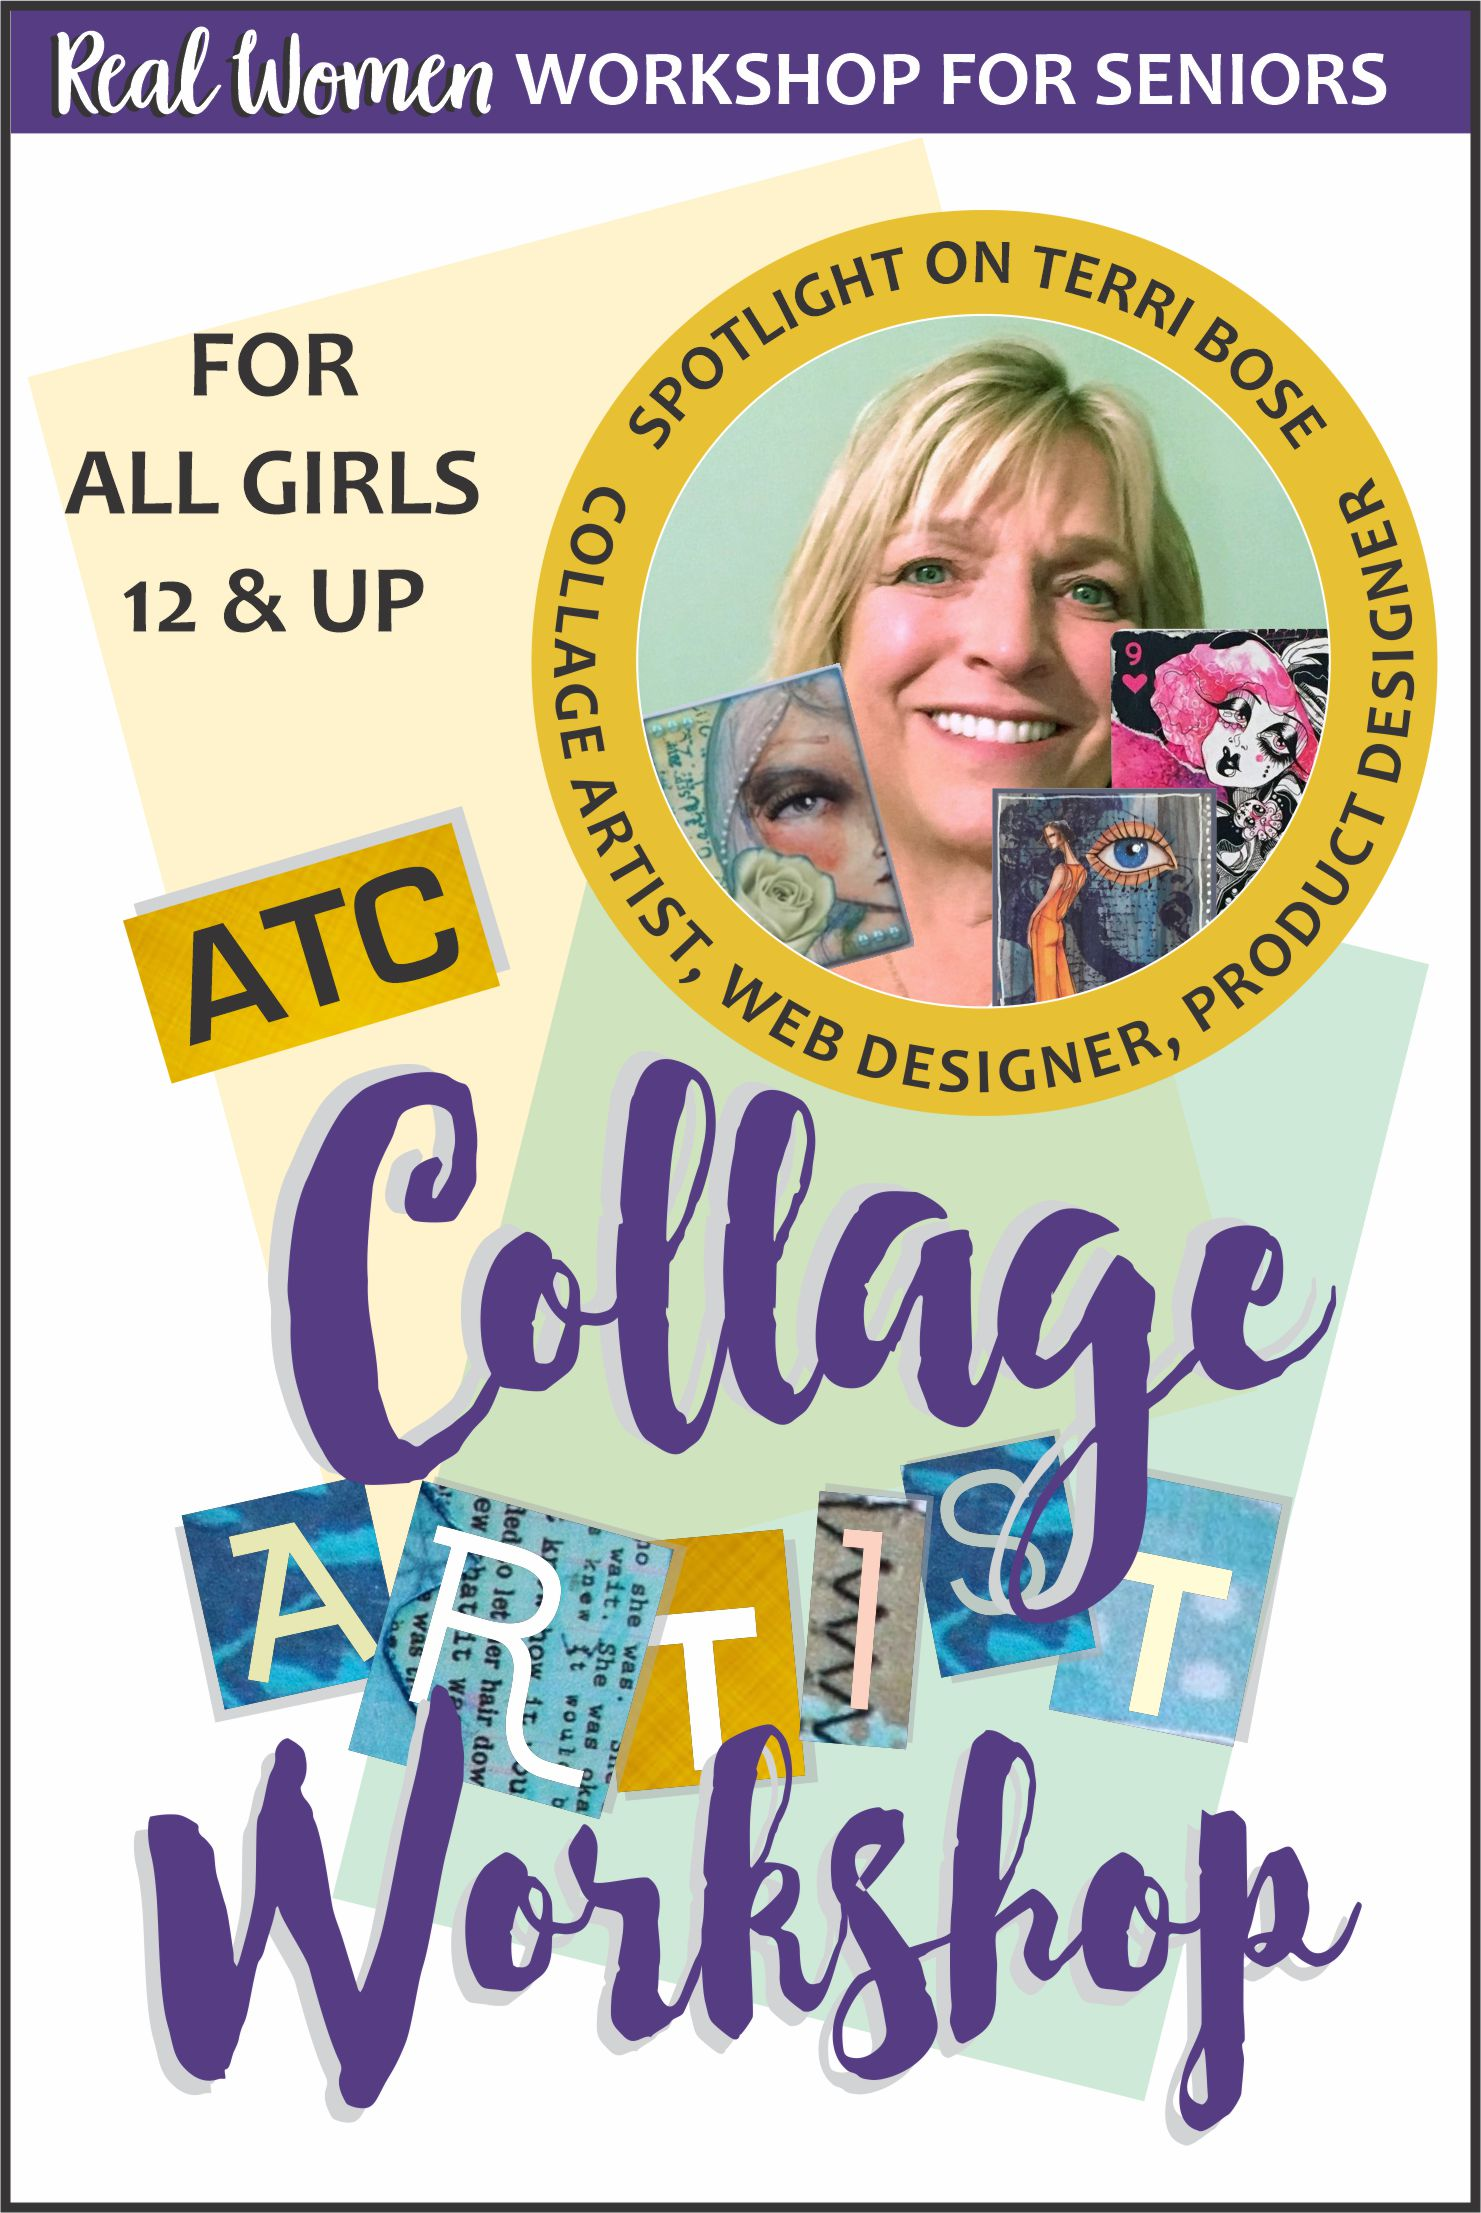 This is a great opportunity for your girls to try something new --Making Artist Trading Cards. Everyone welcomed aged 12 and up! #makingfriends #virtualworkshop #collageartist #artists #girlscouts #girlscoutsworkshop #artisttradingcards #seniorscouts #art #girlscoutart via @gsleader411